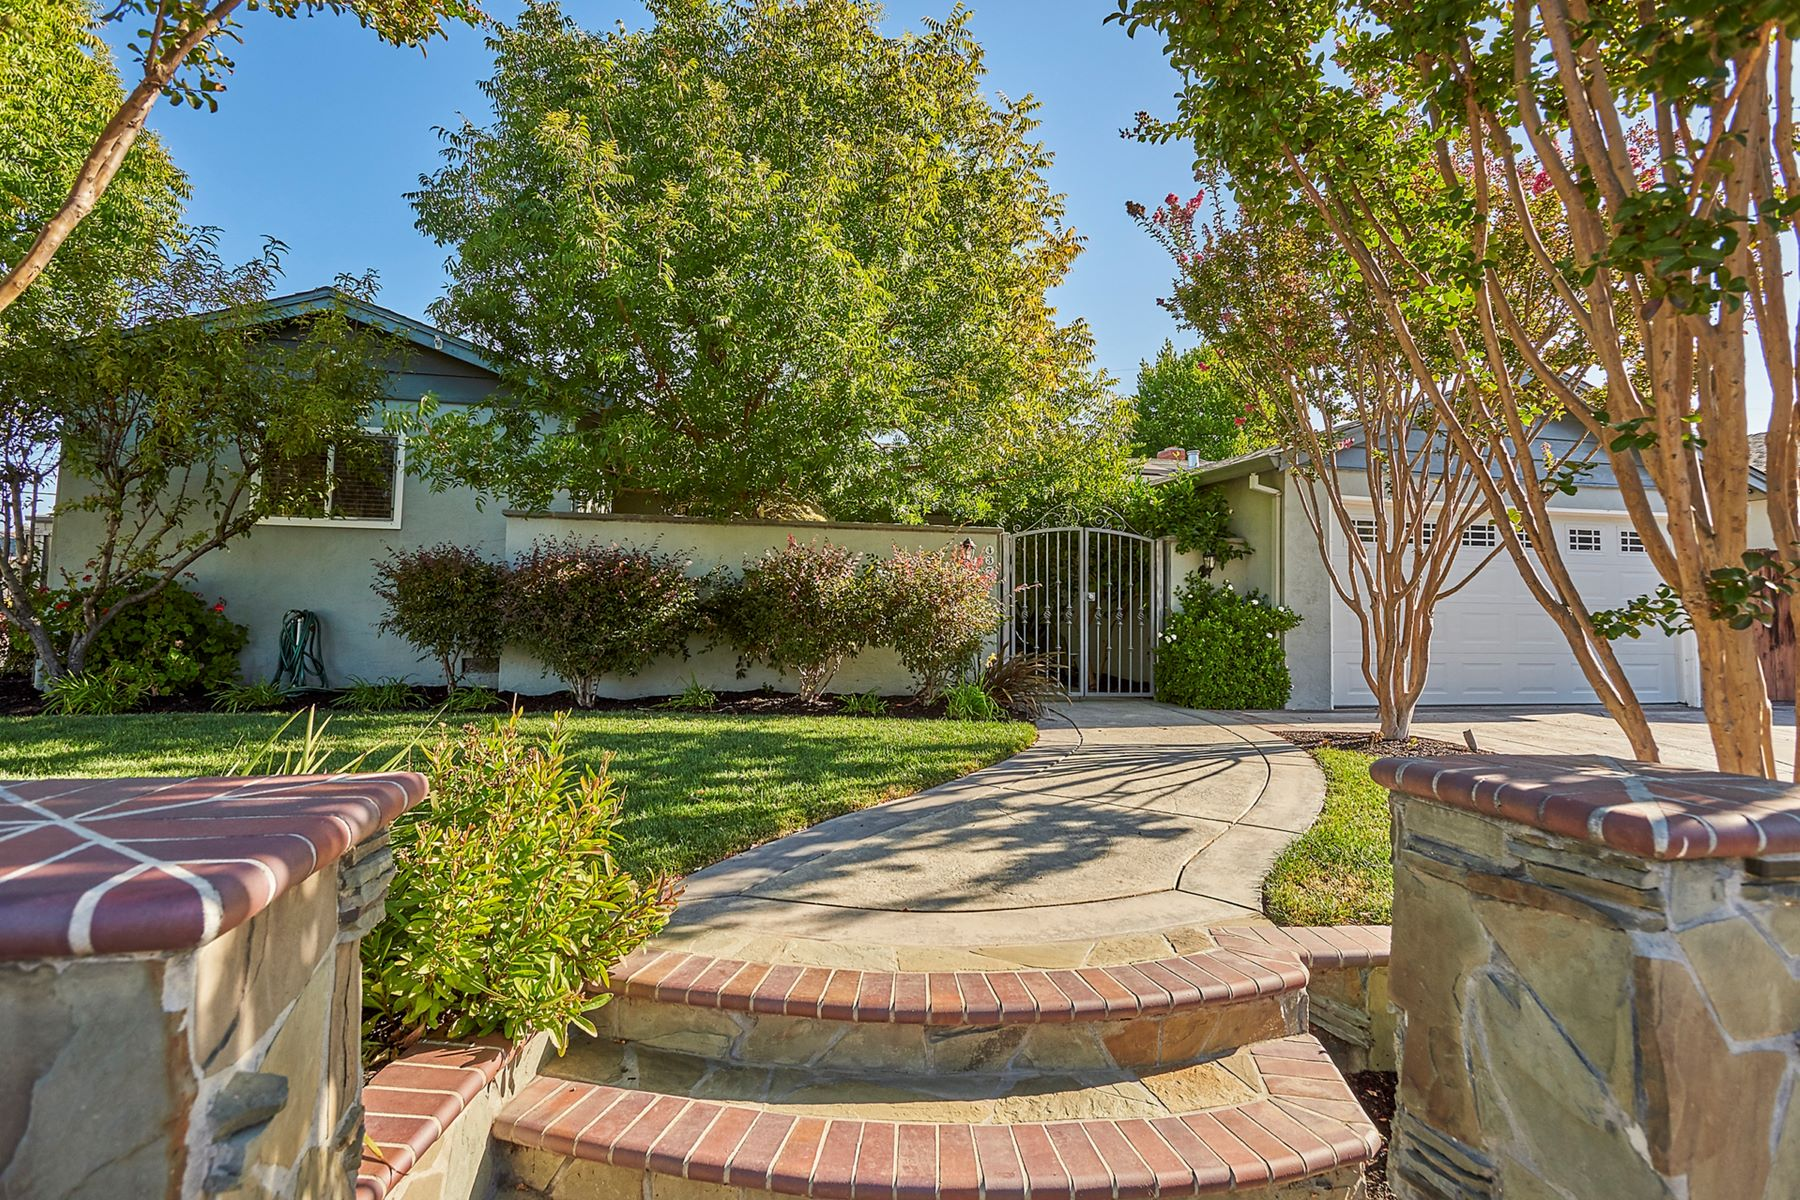 Single Family Homes for Sale at Contemporary Home On Corner Lot 4373 Heartwood Court Concord, California 94521 United States